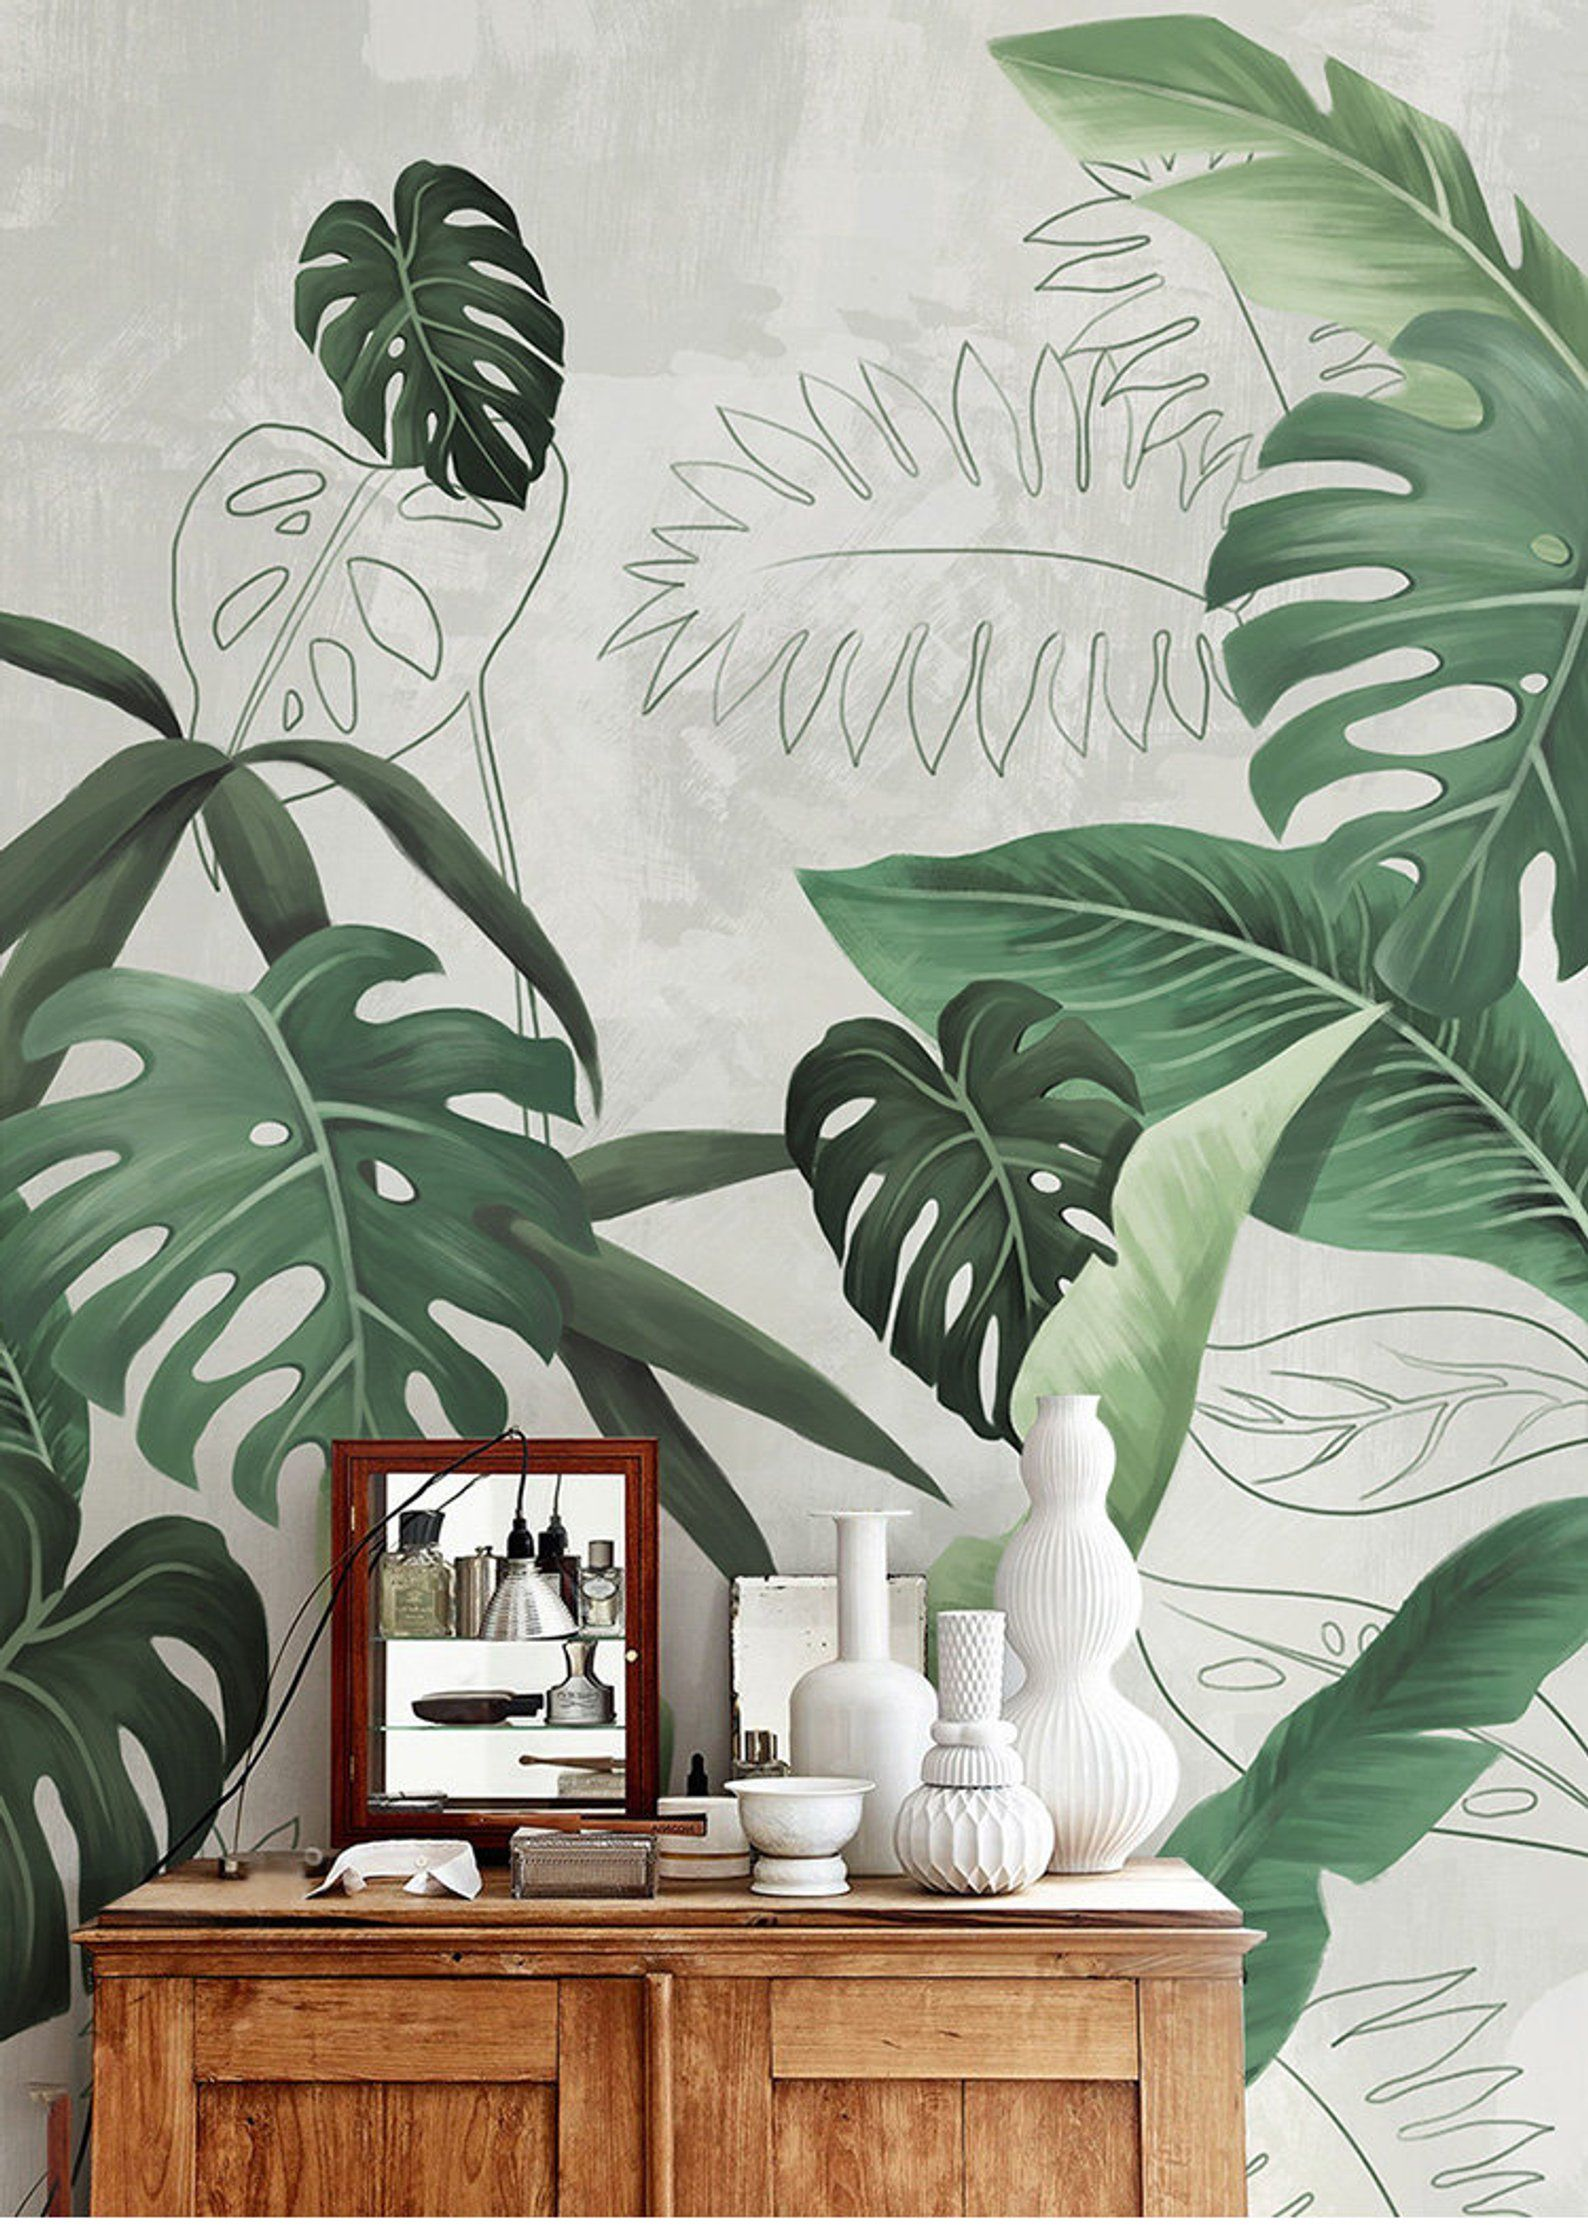 Southeast Asian Rainforest Plant Wall Murals Wall Decor Green Leaves Shrub Wallpaper Wall Mural Tropical Landscape Wallpaper Wall Murals Wall Art Wallpaper Wall Wallpaper